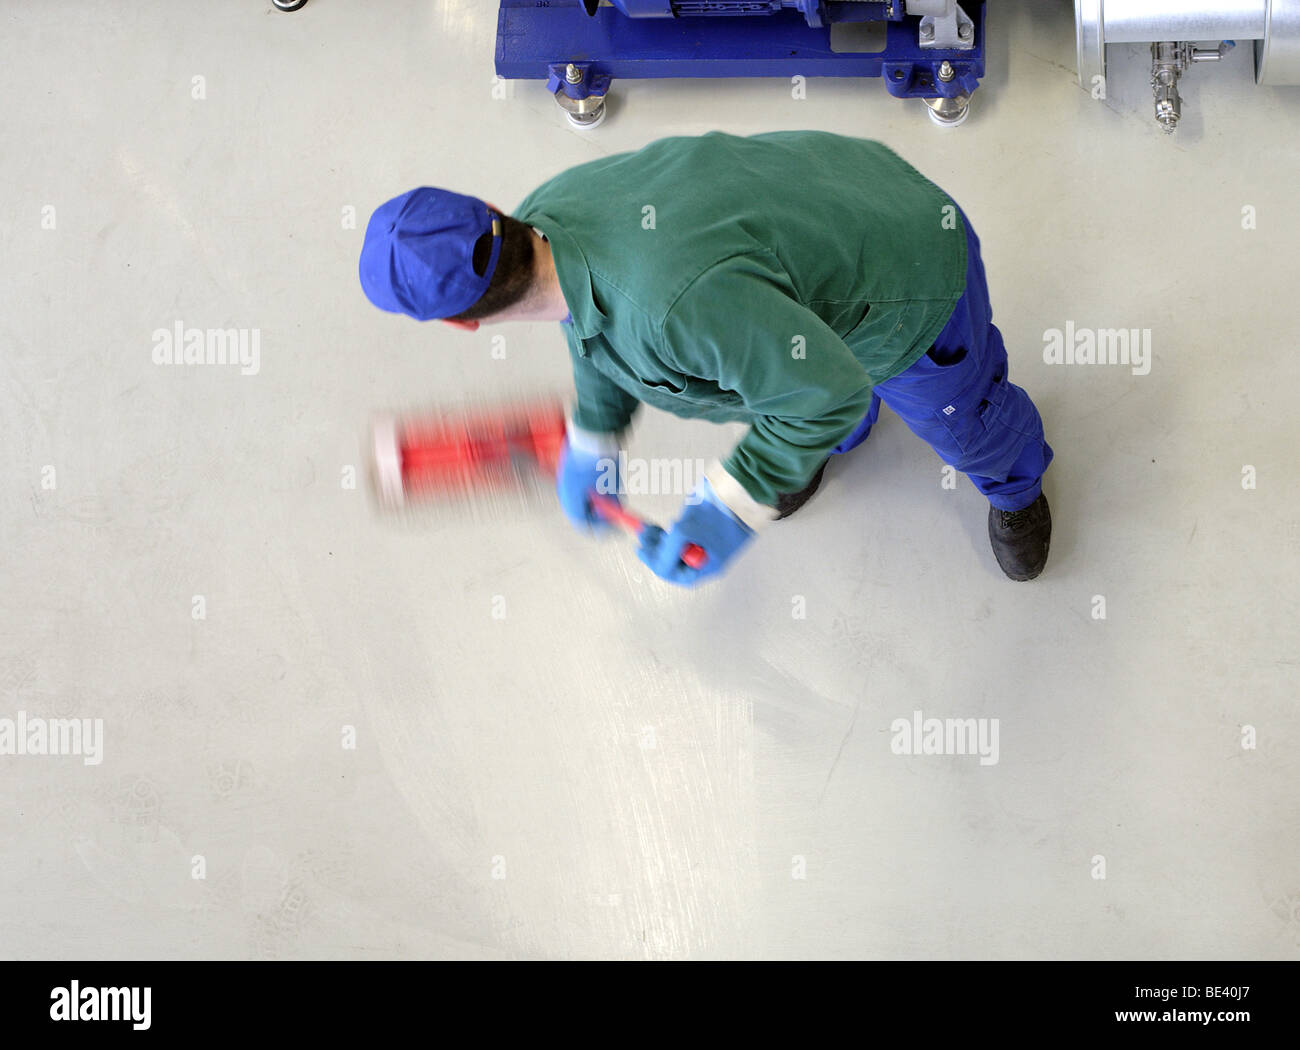 MAN AT WORK. CLEANING THE FLOOR. Stock Photo